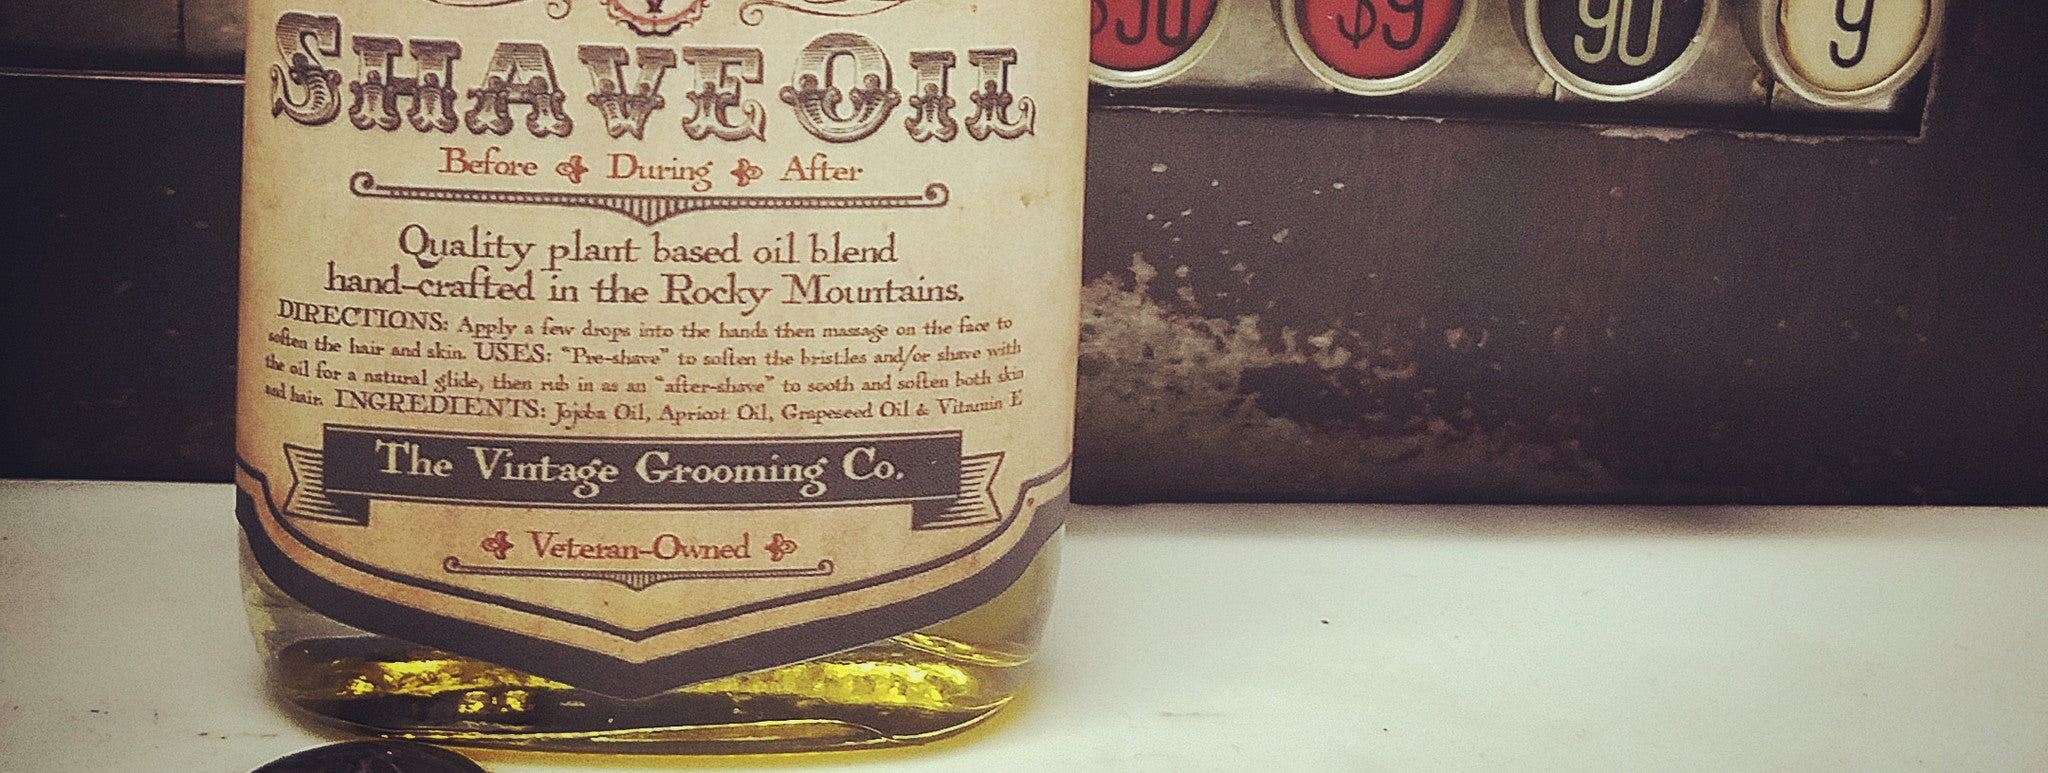 Shave, Oil, Colorado, Natural, Sooth, Soothing, Plant, Vintage, Grooming, Brand, Beard, Company, Shave, Shaving, Veteran, Best, Glide, Top, Industry, New, Blog, Amazon, Wholesale, Barbershop, Salon, Barber